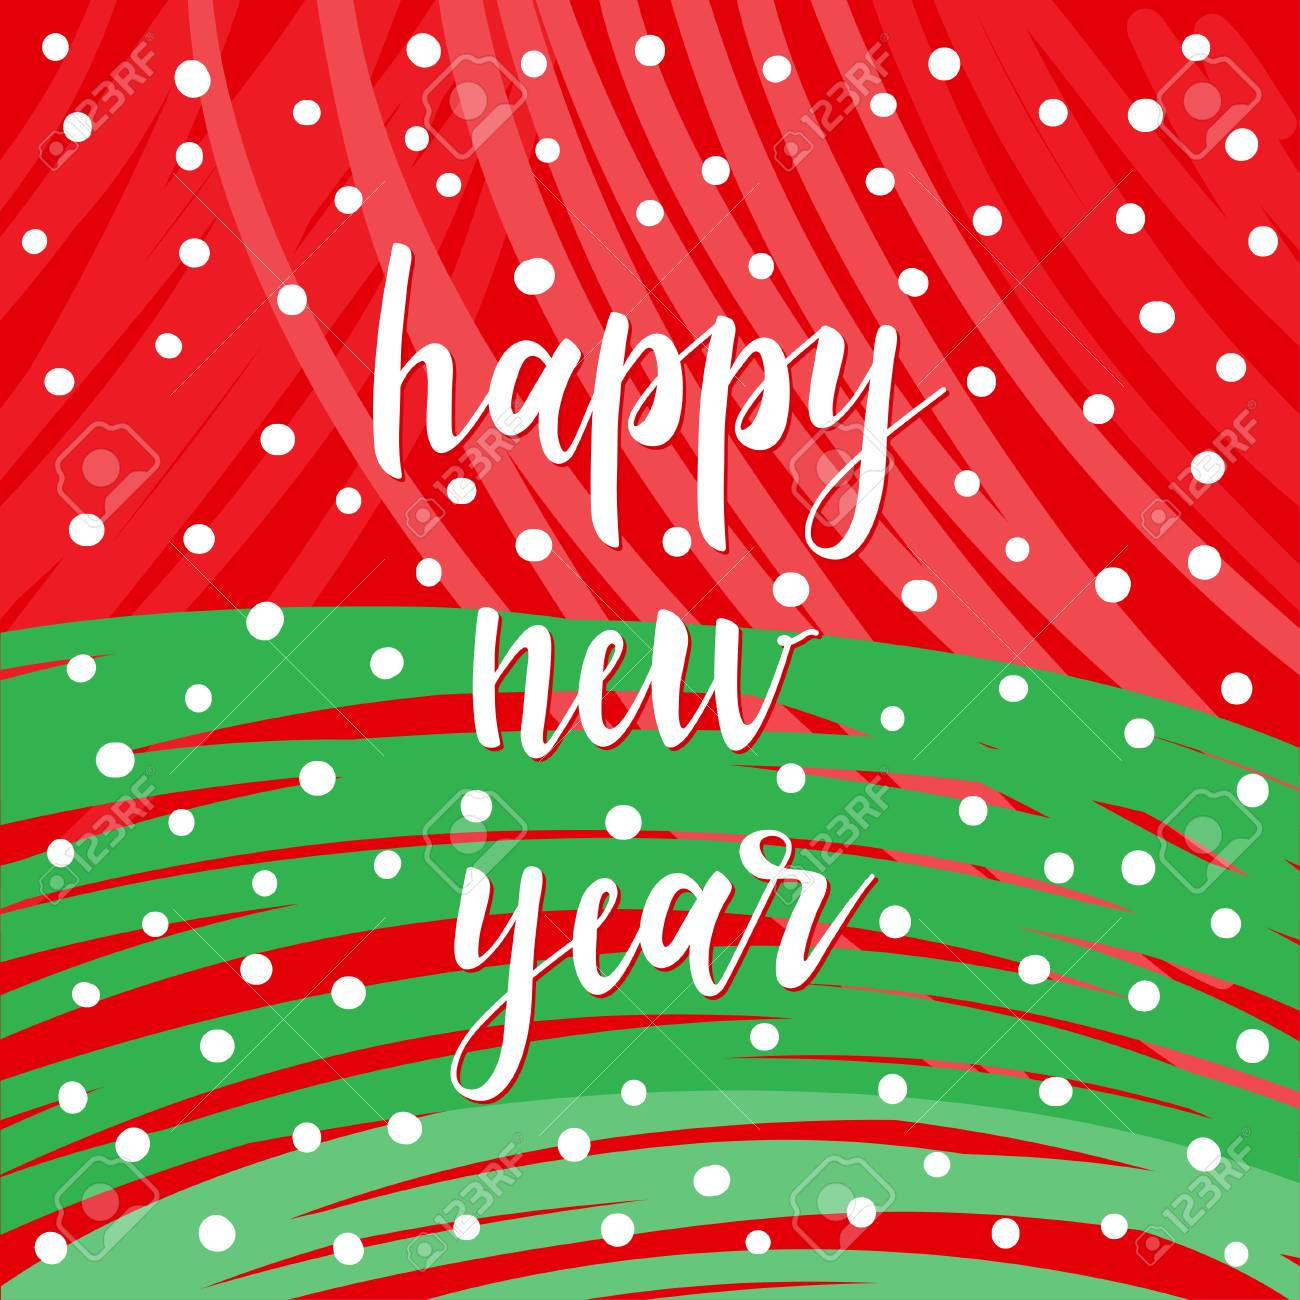 new year card template handwritten new year lettering and hand drawn snowflake on red and